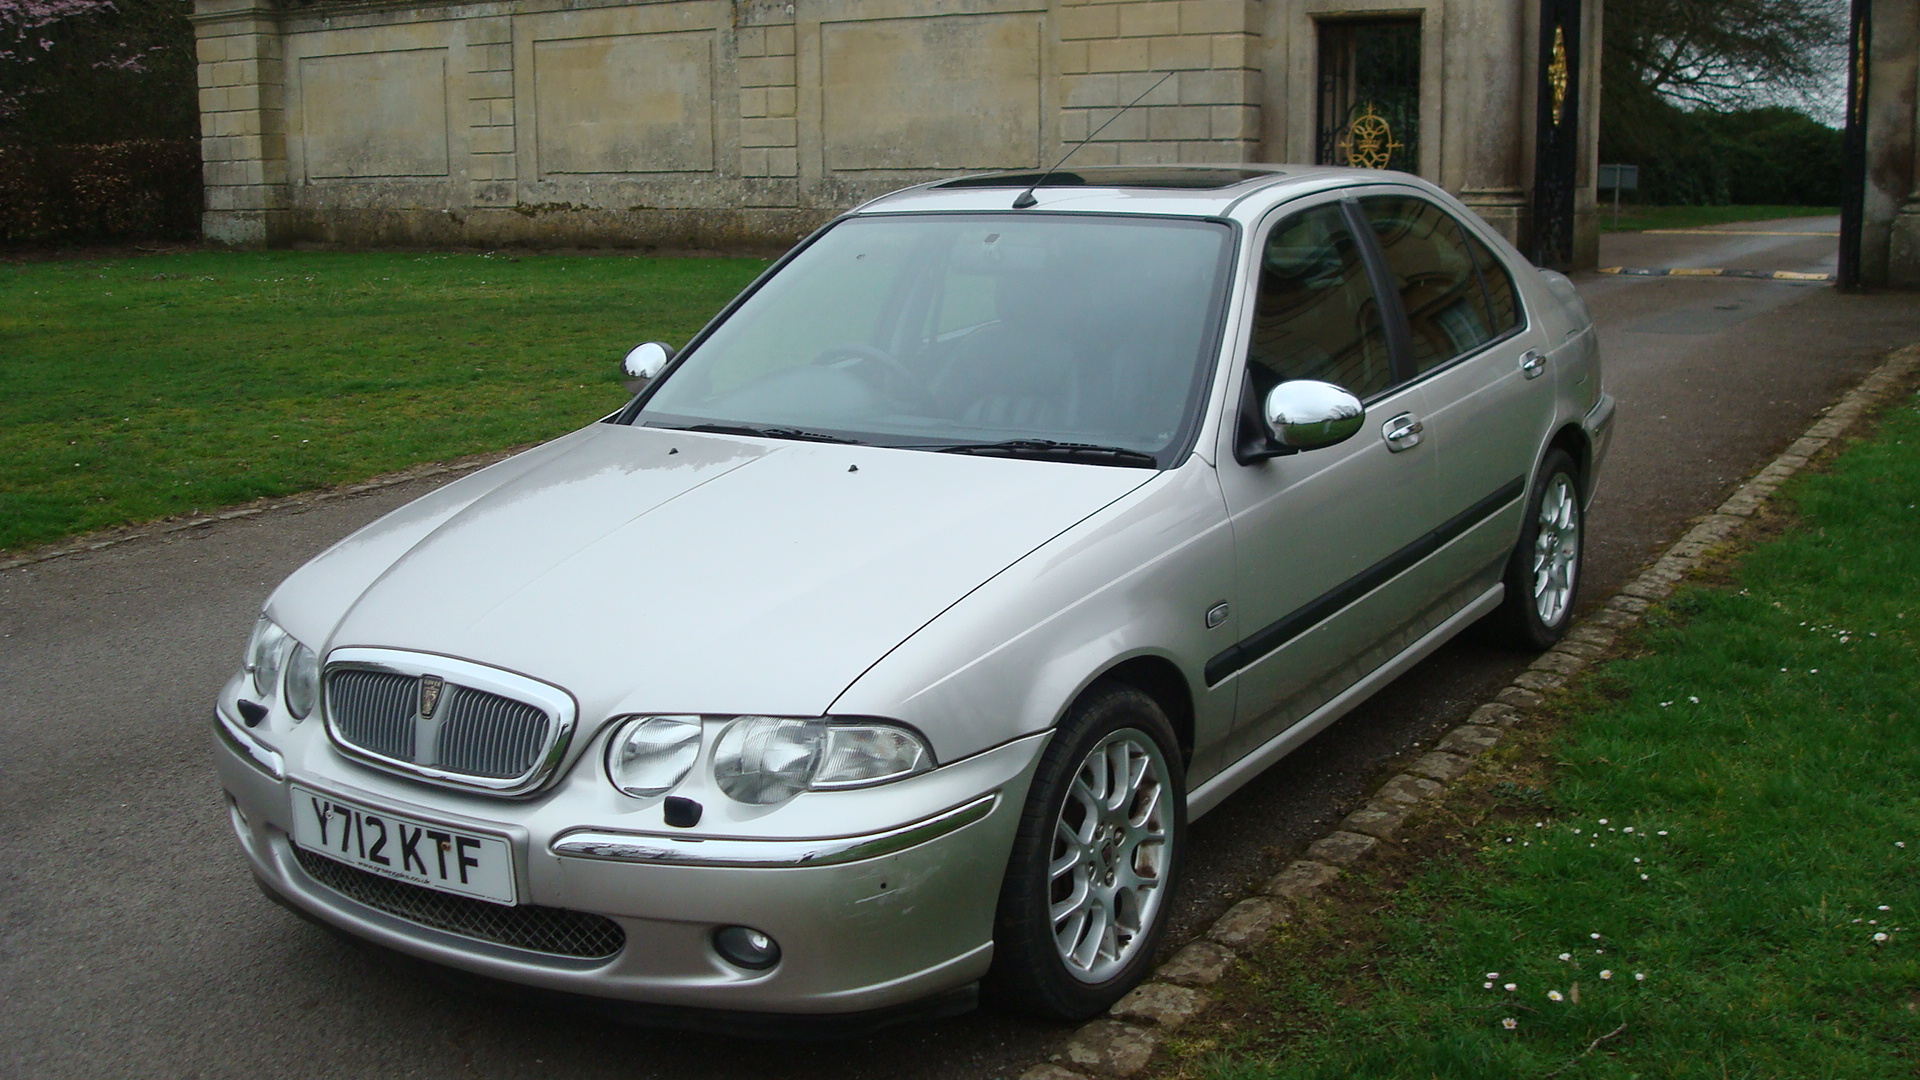 Mercedes Benz Oil Change >> Rover 45 2.0 V6 Connoisseur Saloon - Country Classics ...